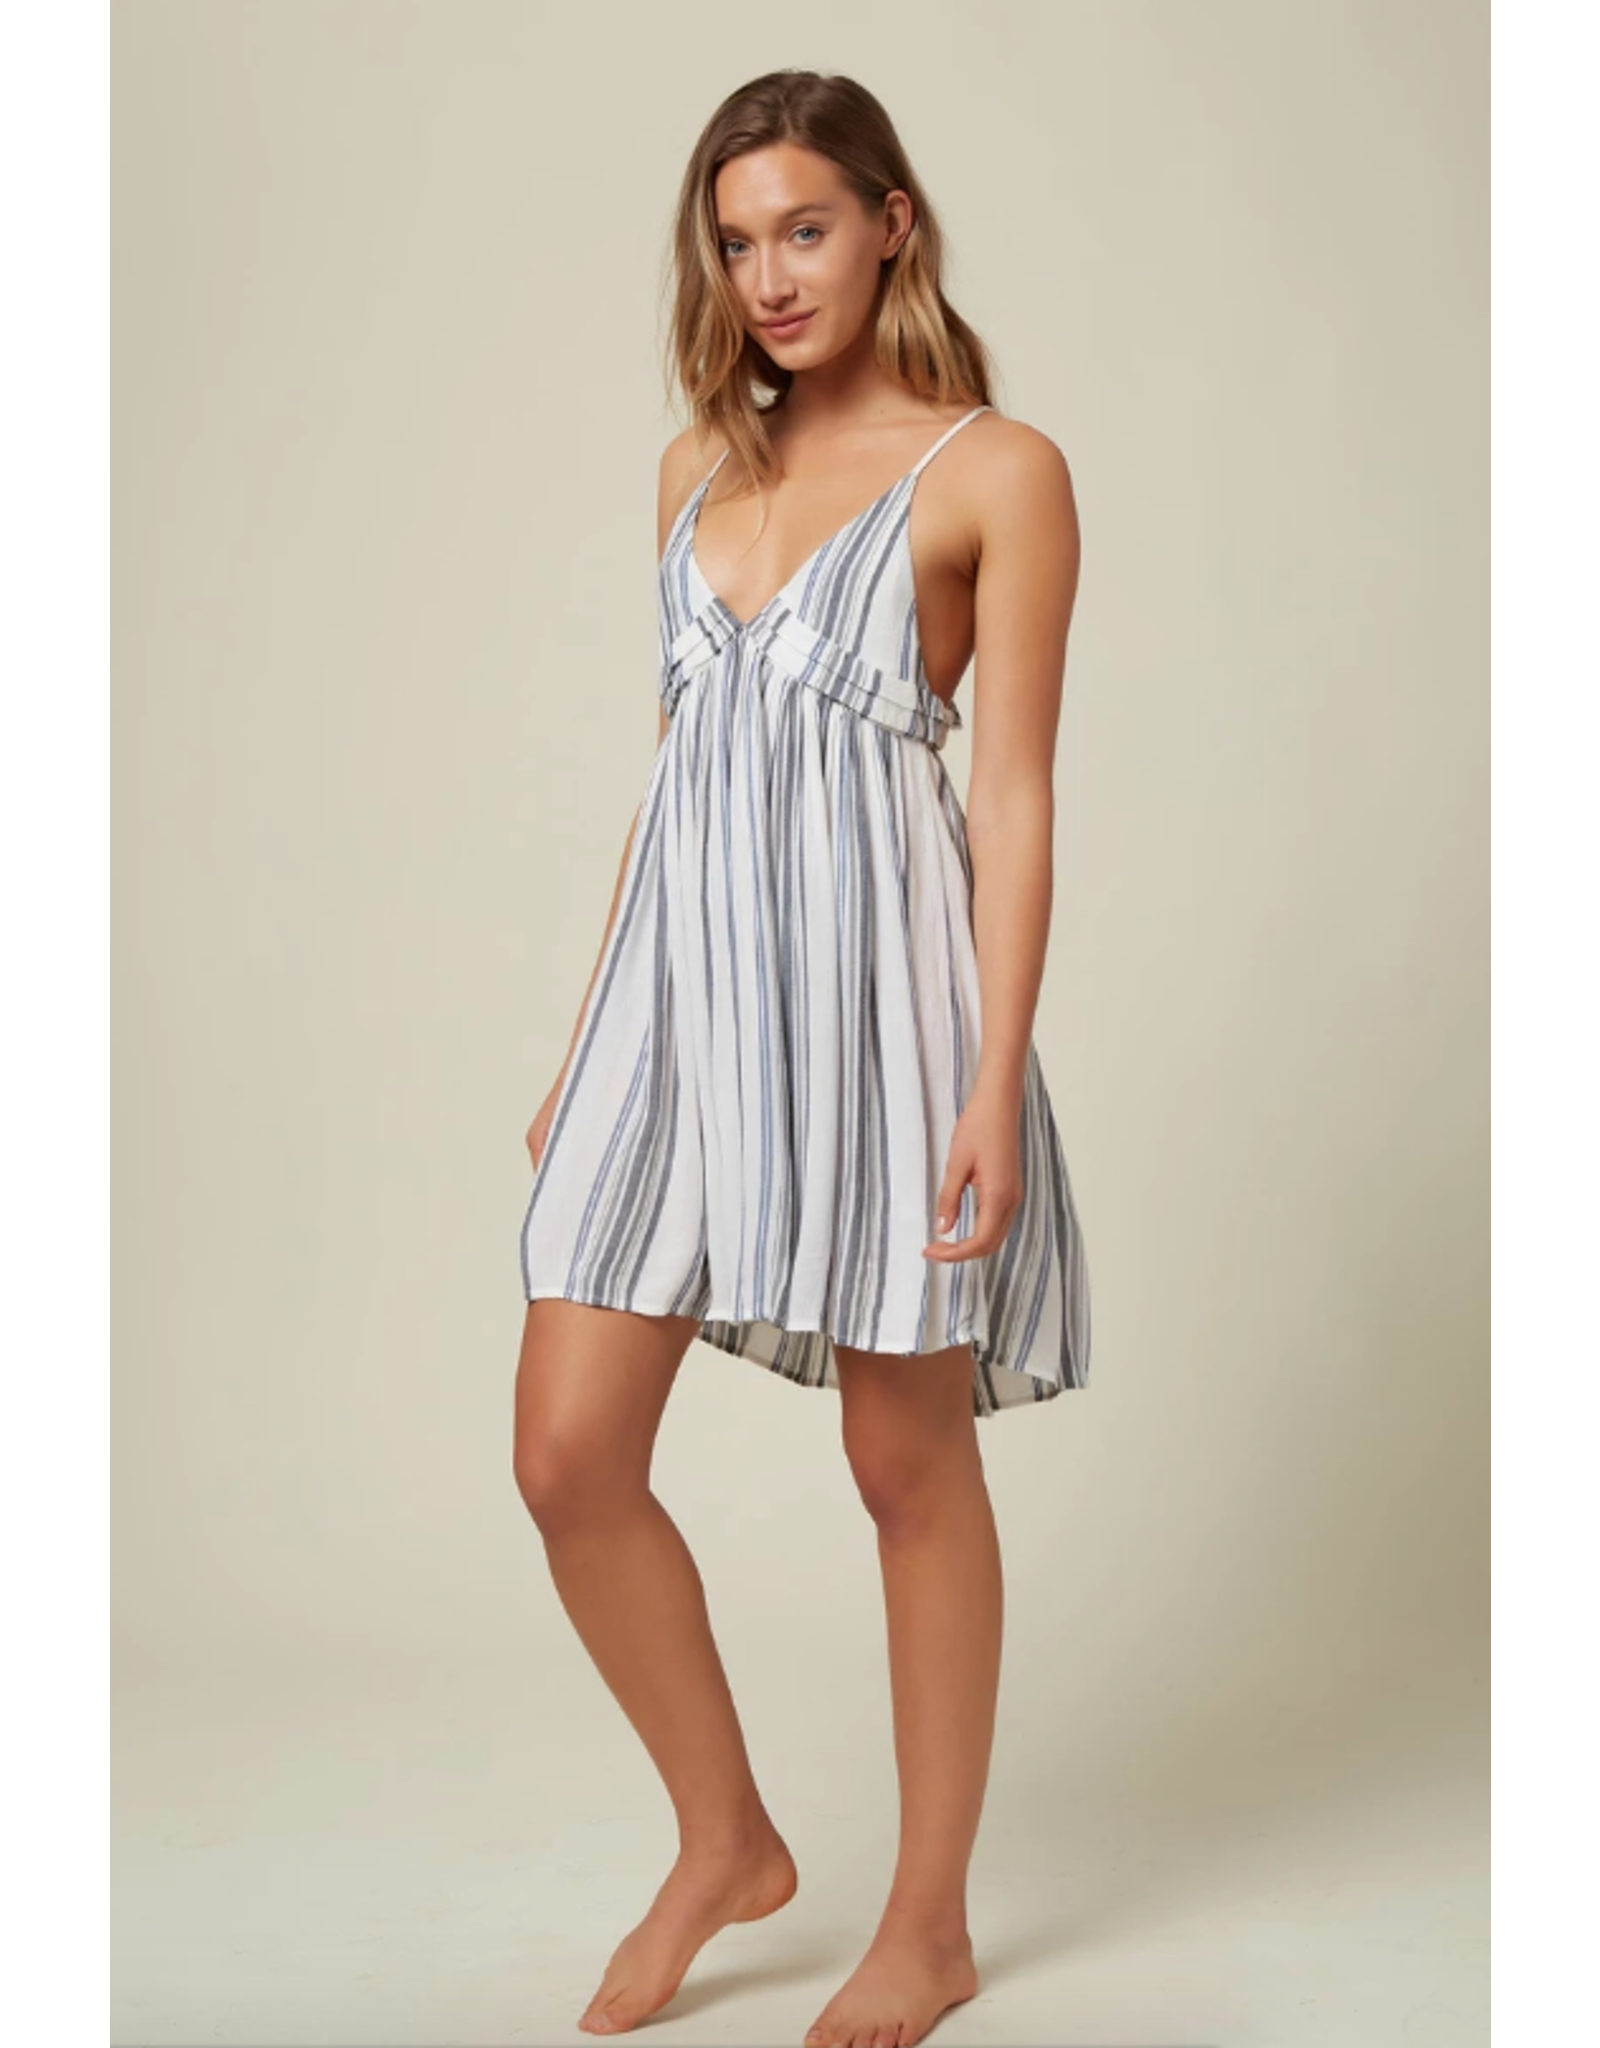 ONEILL ONEILL SALTWATER SOLIDS STRIPE TANK DRESS COVER-UP